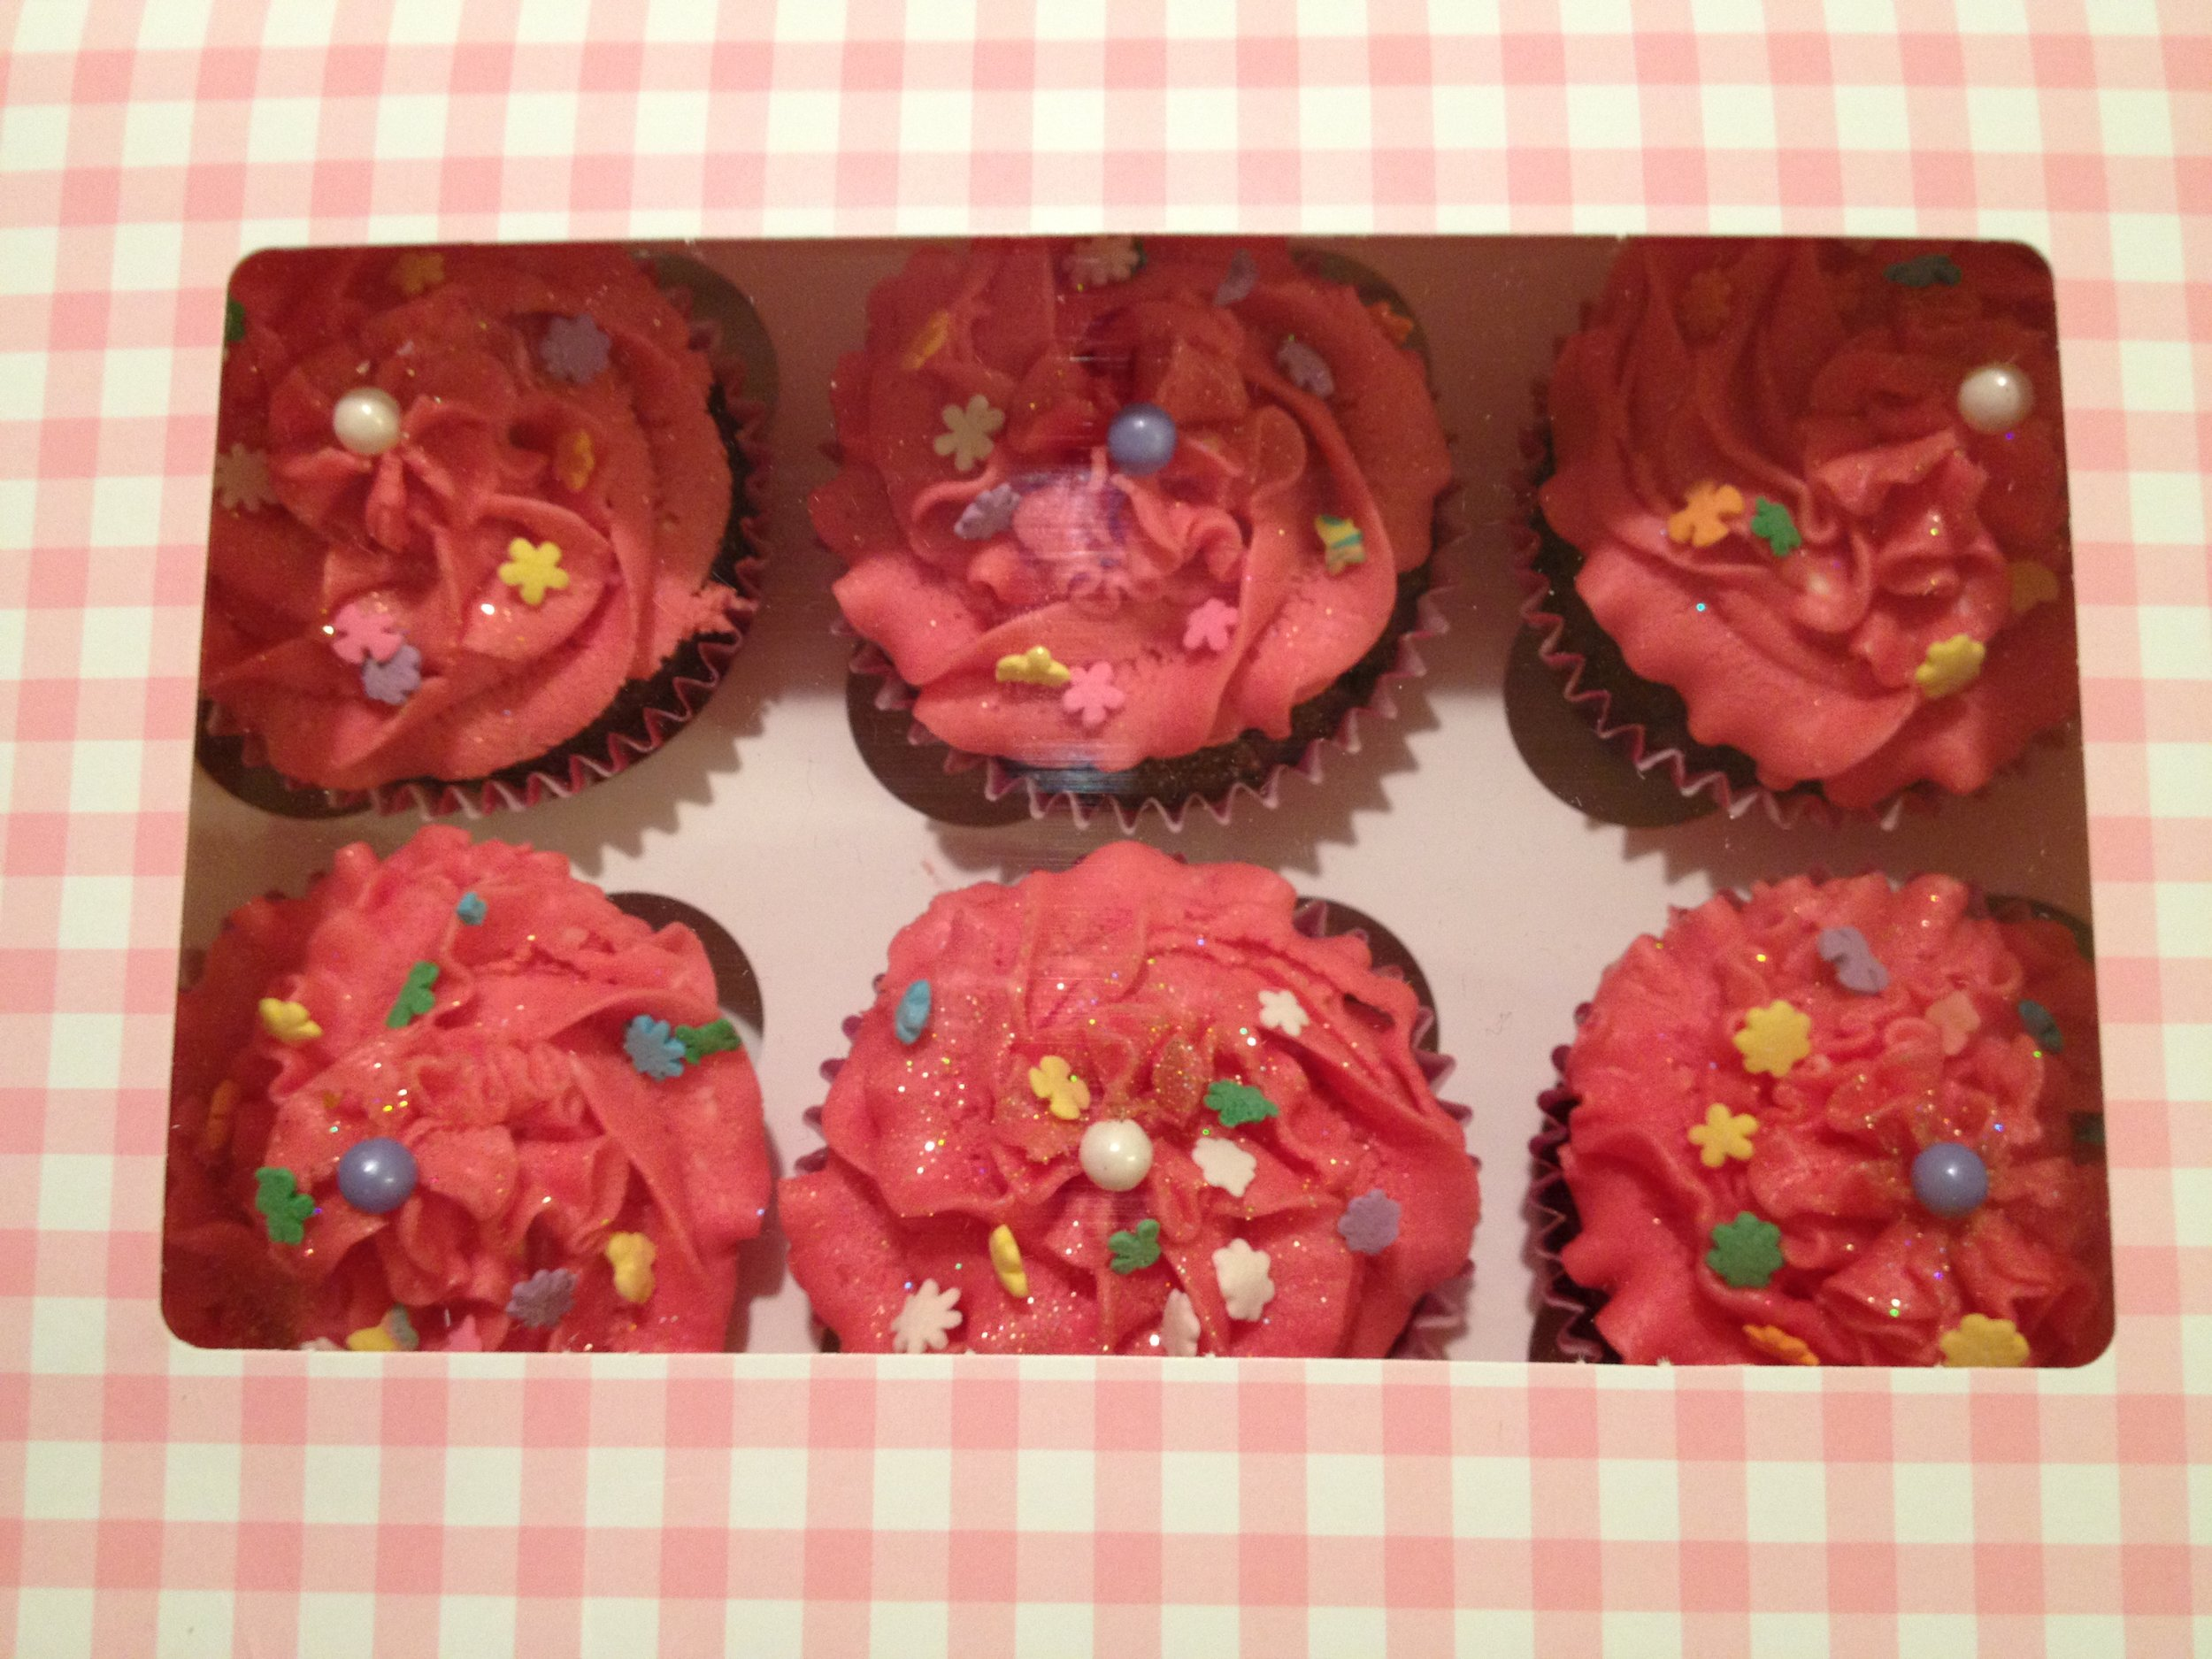 6 little cupcakes, all in a row!